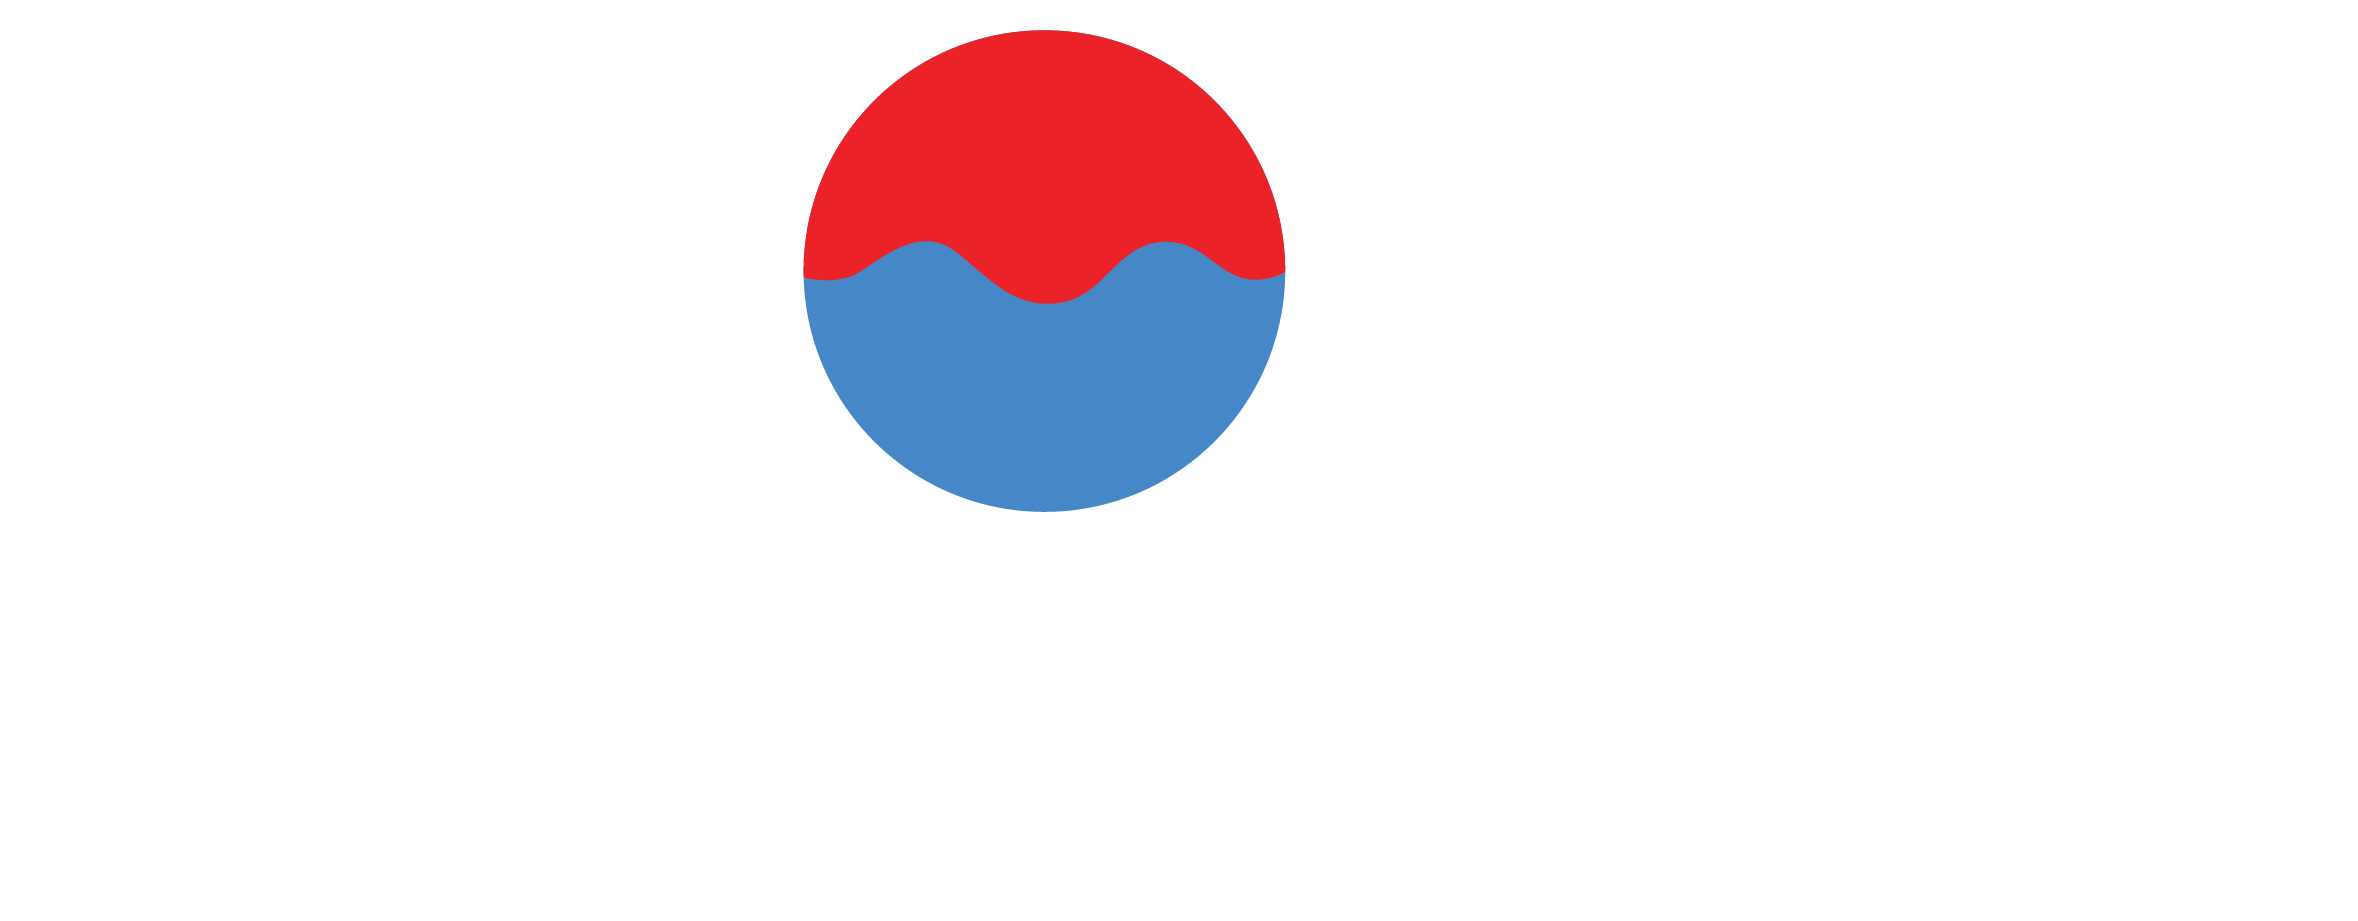 Chowdy Foundation Logo in White